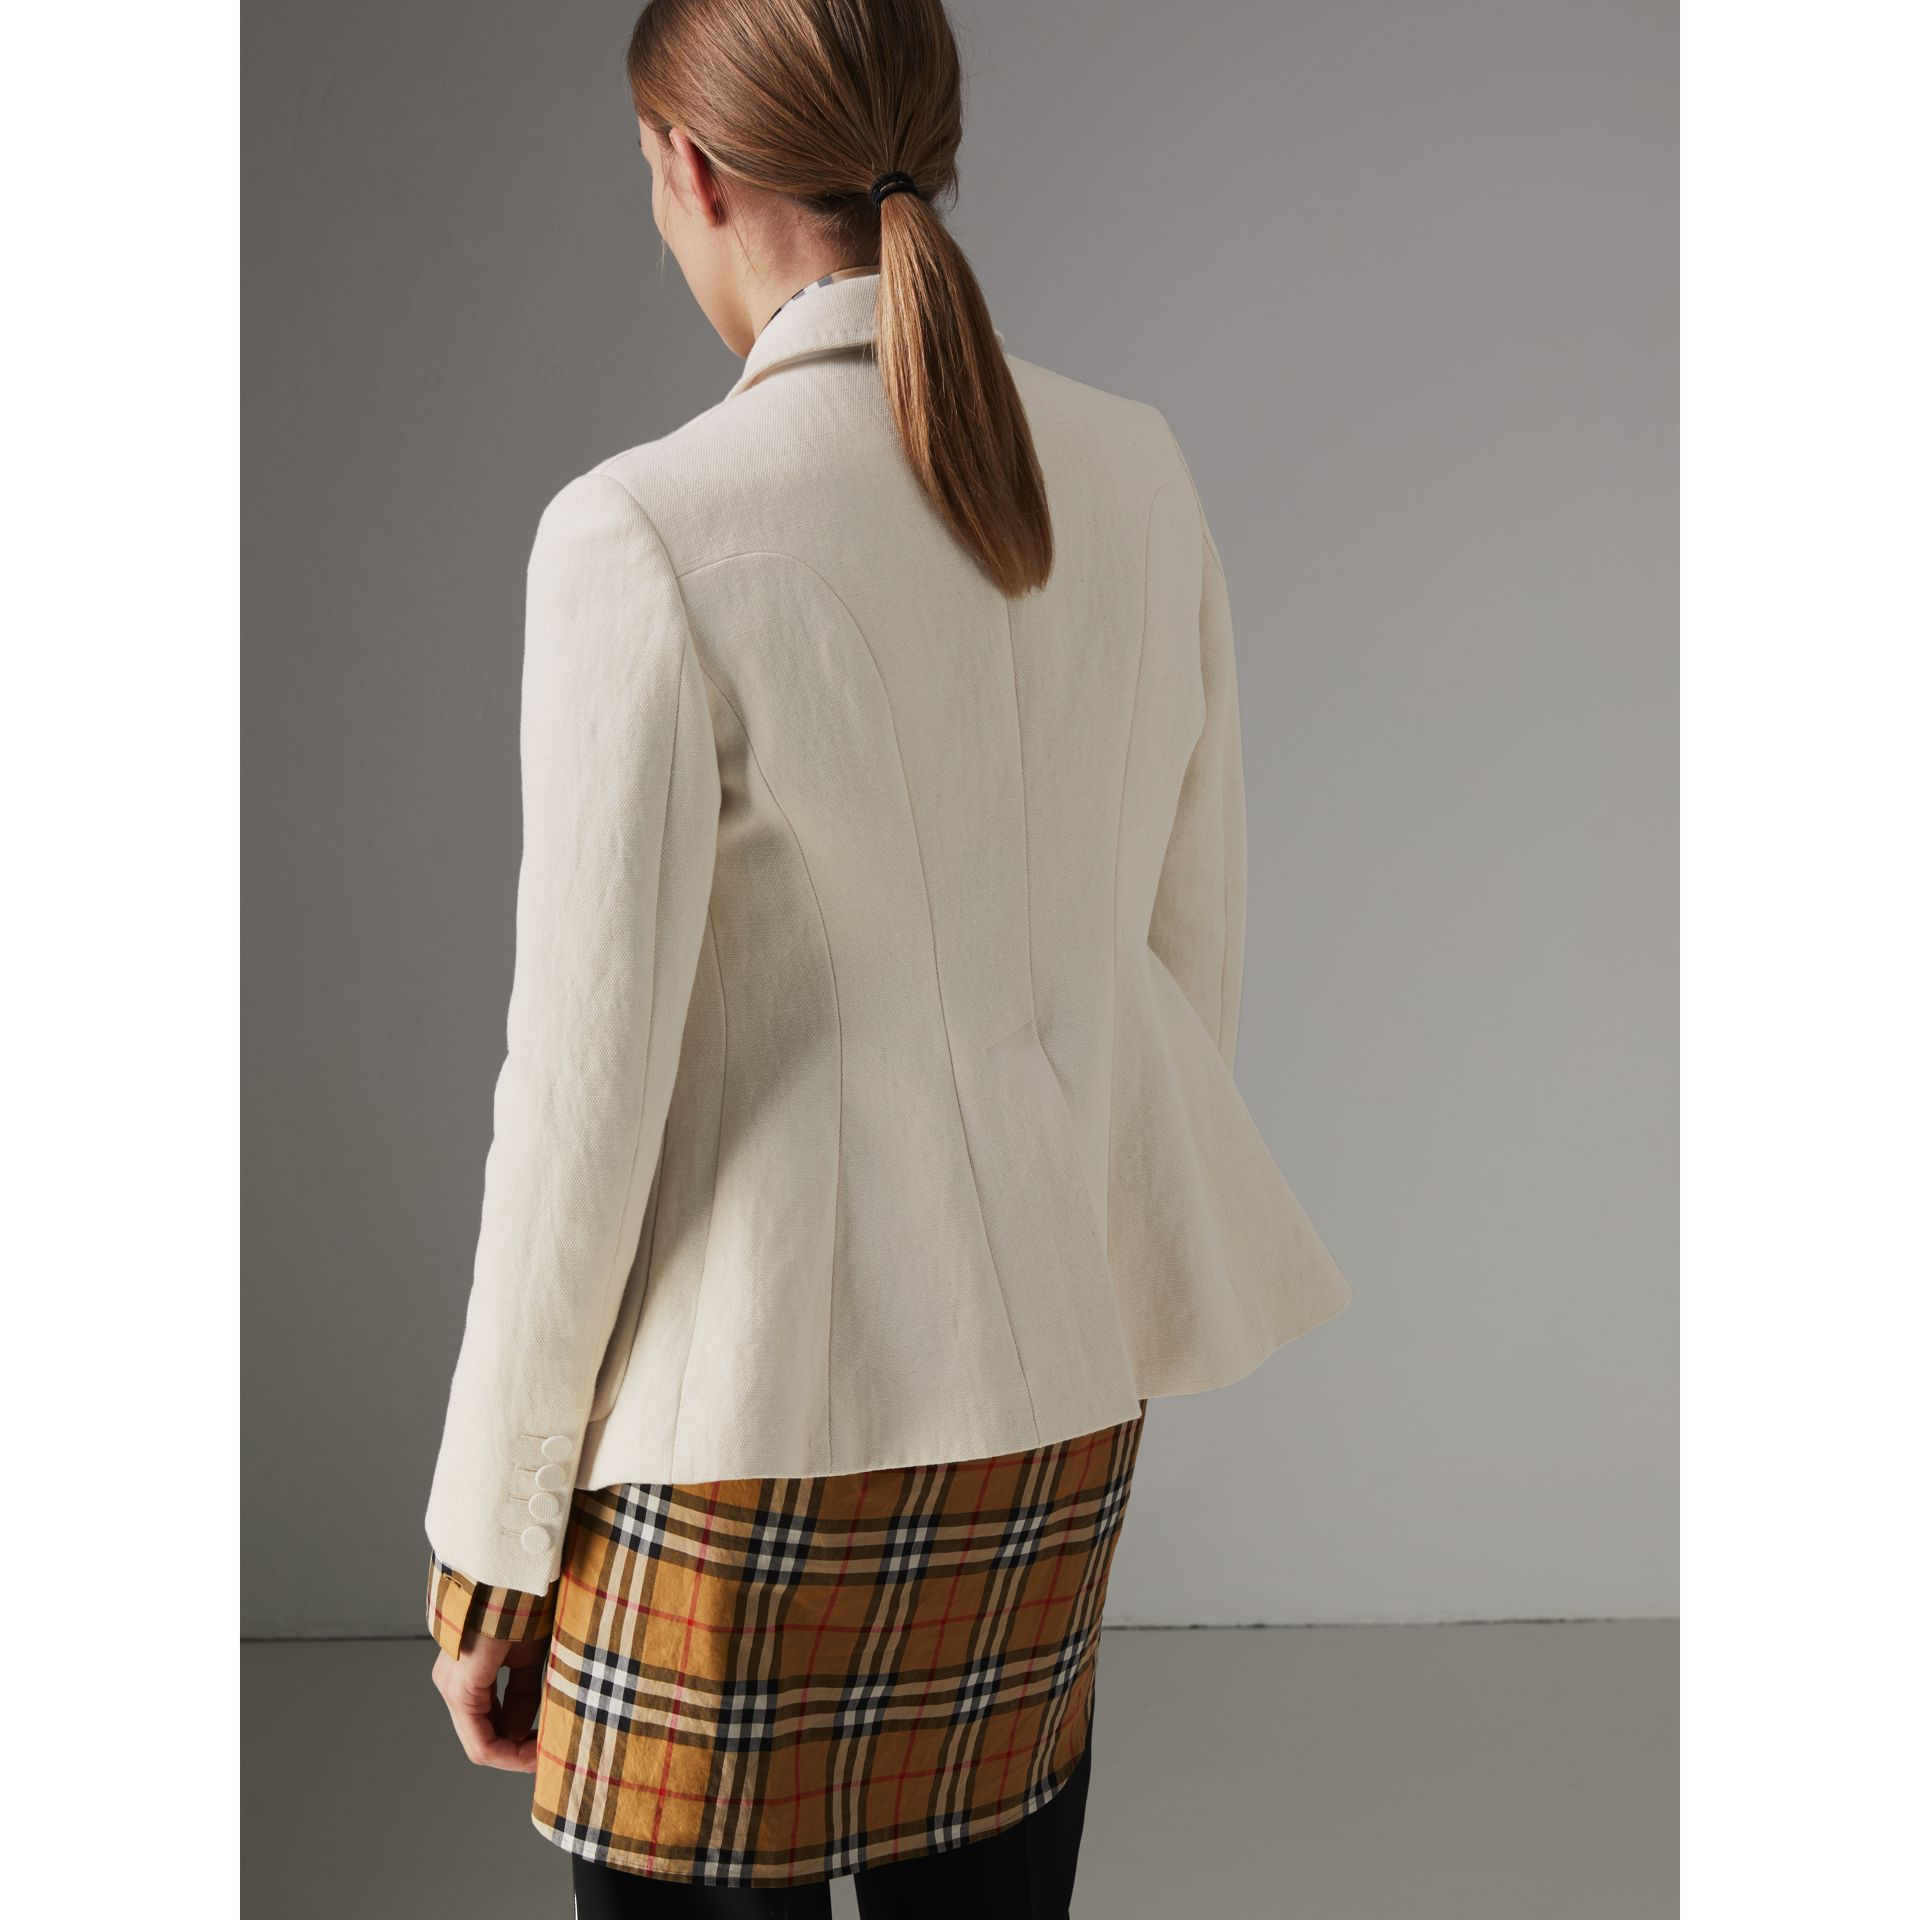 Cotton Linen Fitted Jacket in Off White - Women | Burberry - gallery image 2